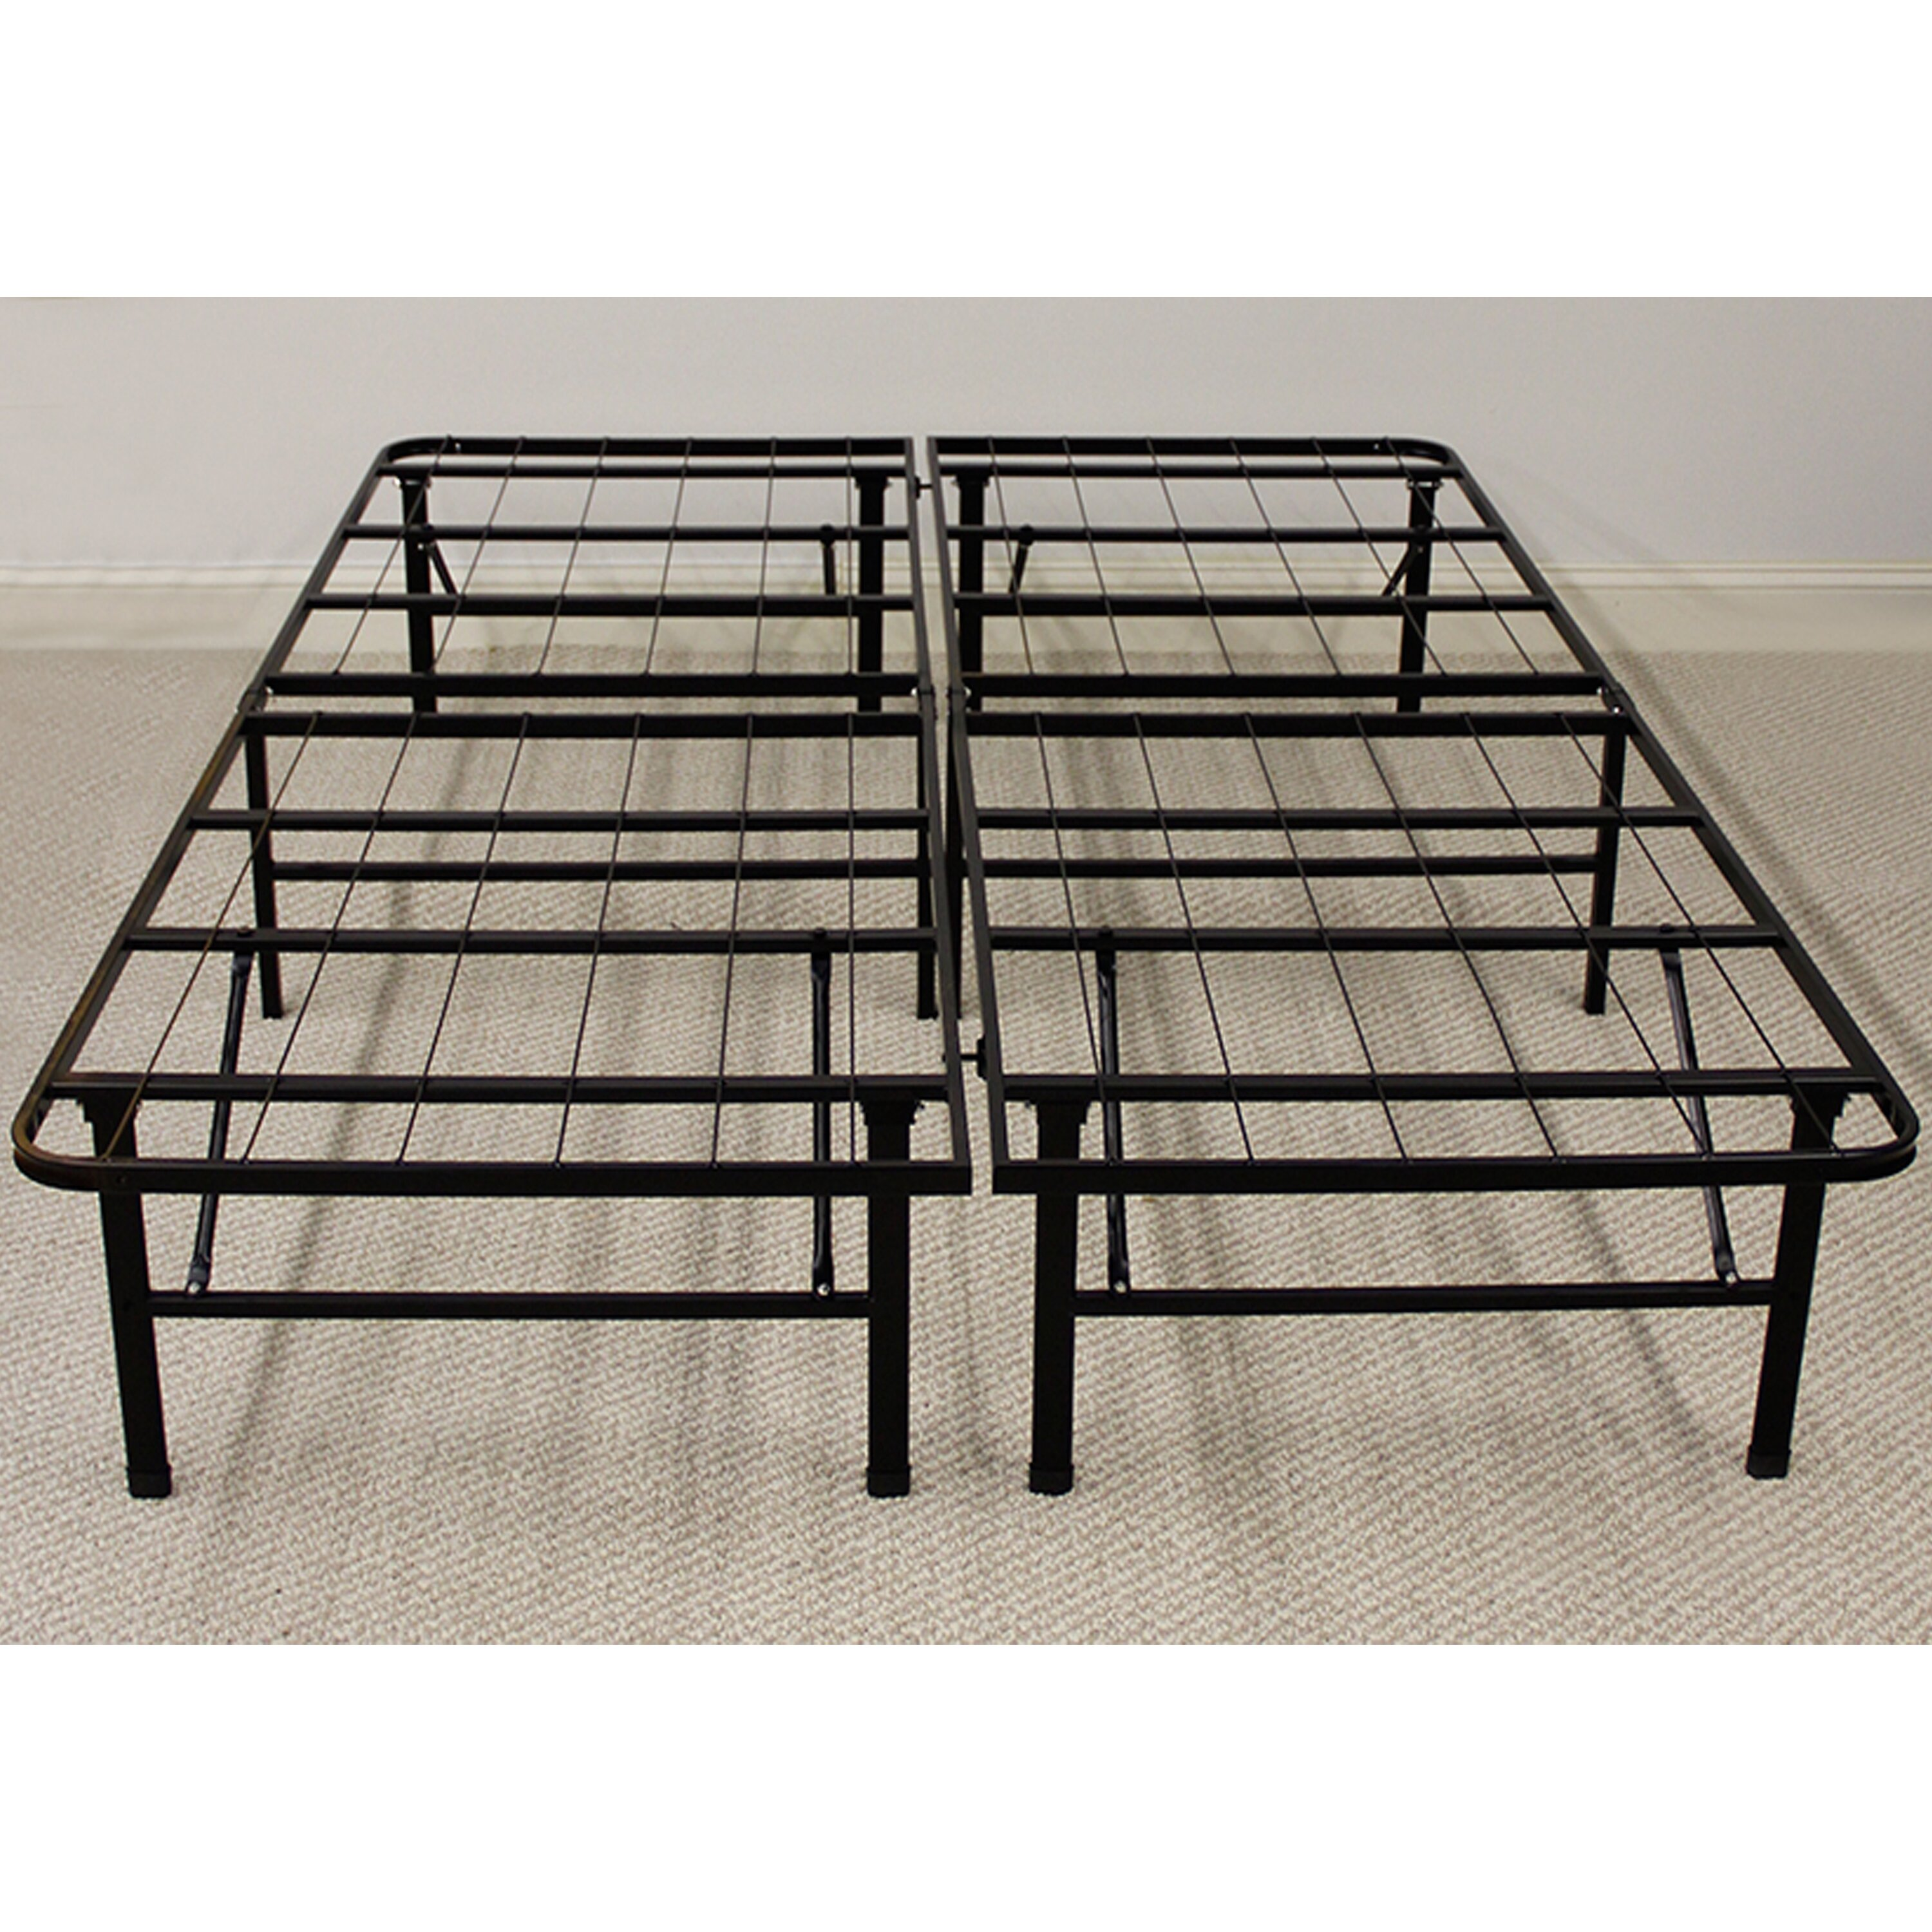 Classic Brands Hercules 14 Platform Heavy Duty Metal Bed